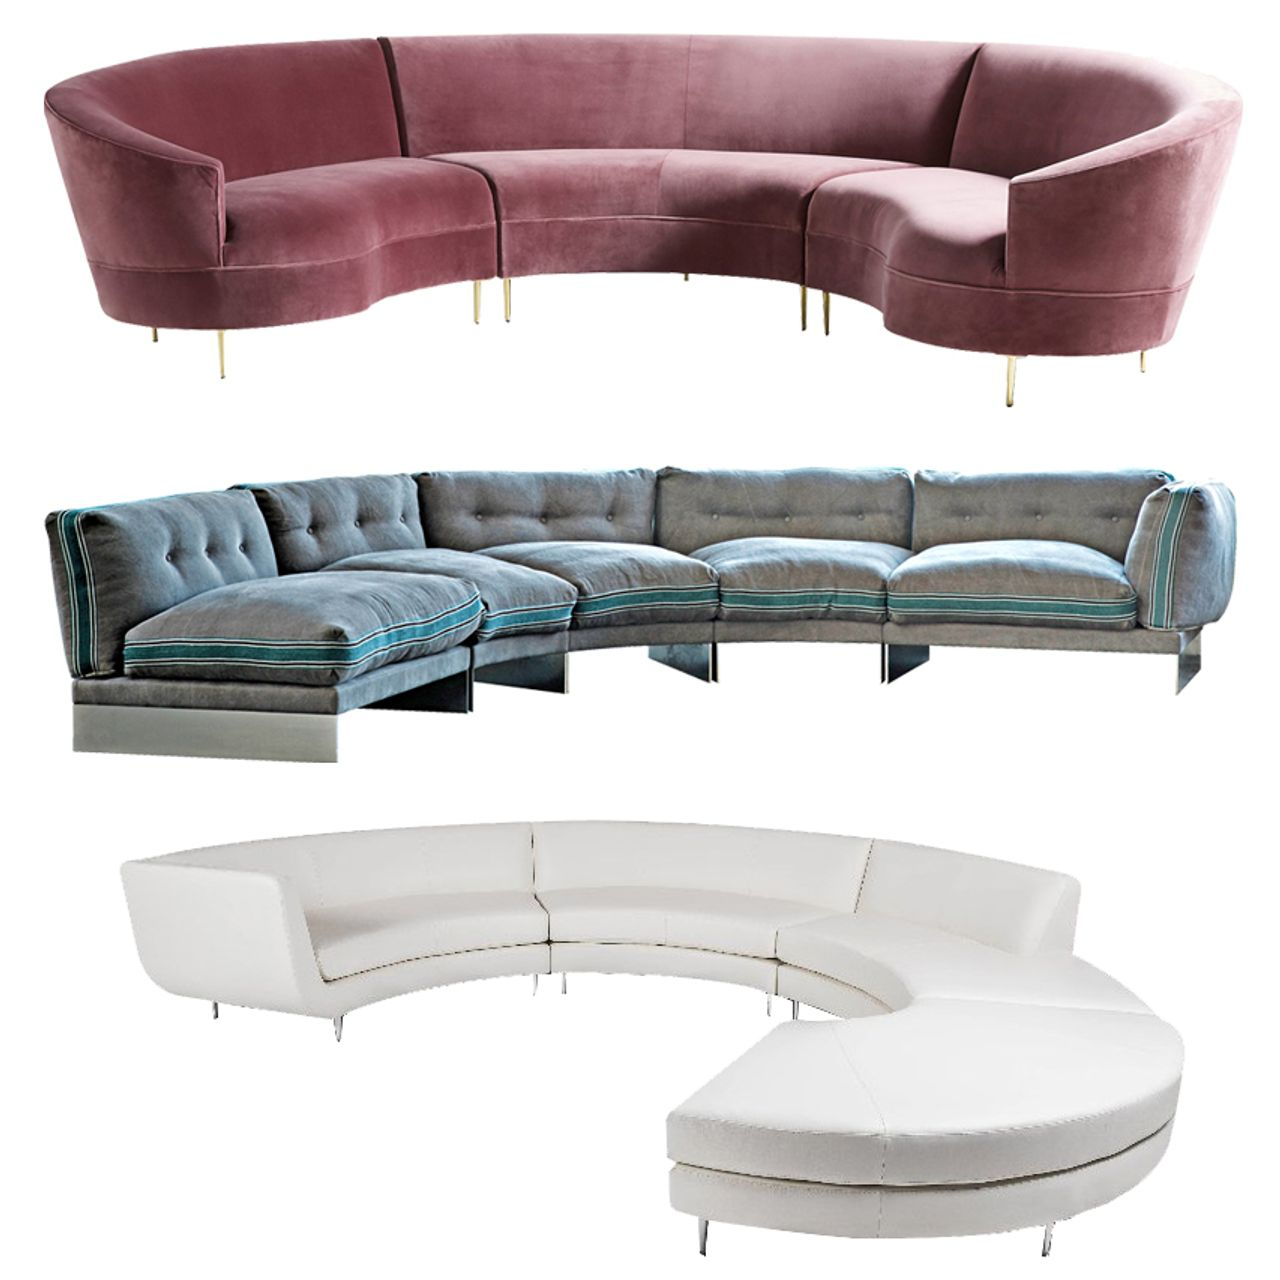 the newly trendy sofa that will change